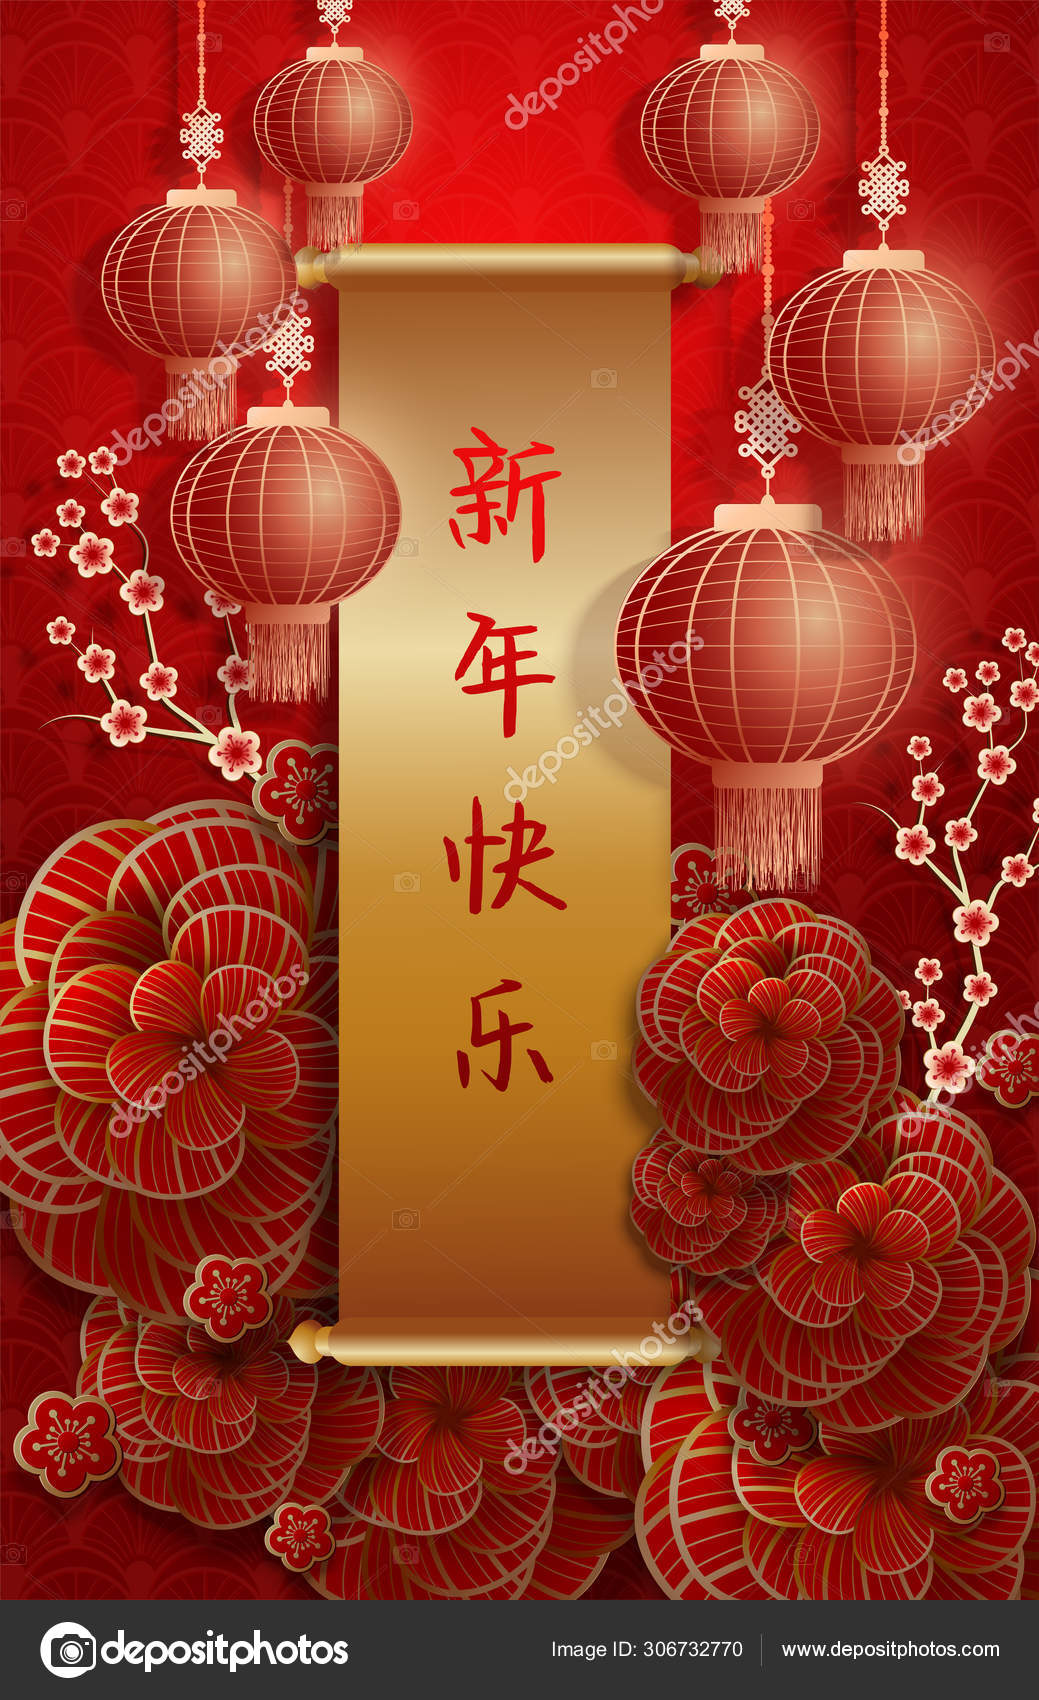 2020 Chinese New Year Greeting Card Zodiac Sign Paper Cut ...